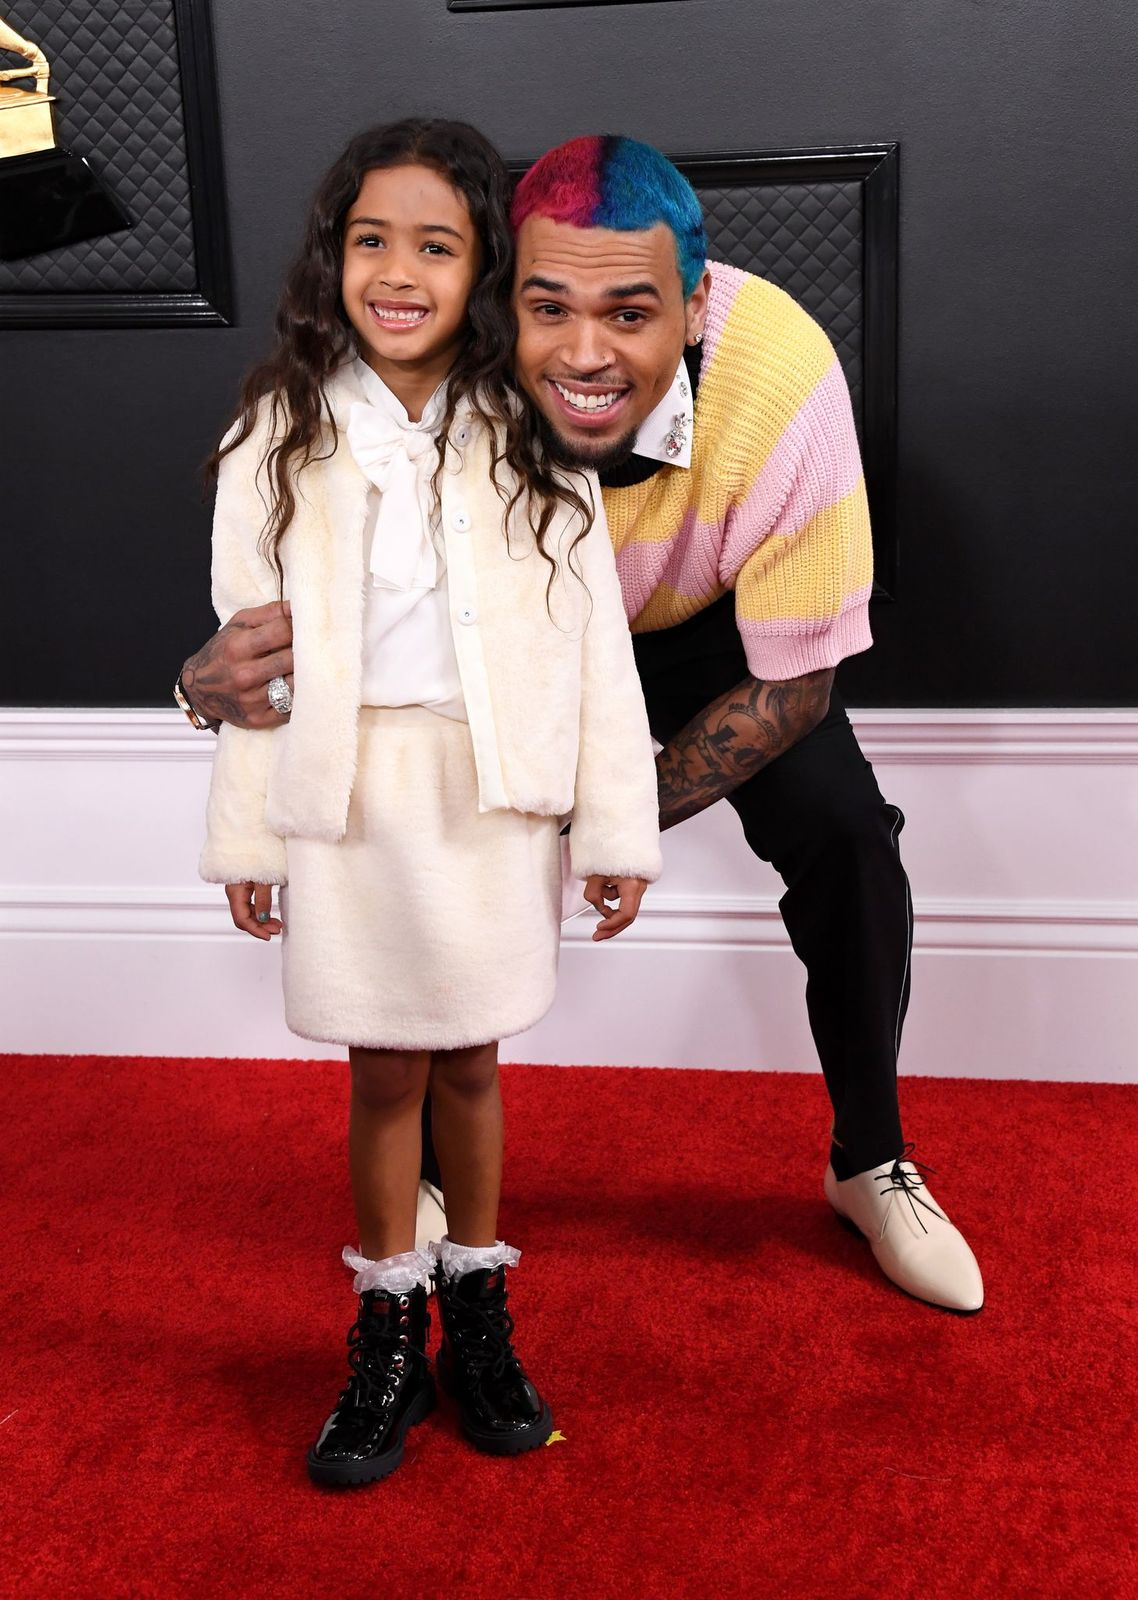 Chris Brown and daughter Royalty Brown at the 62nd Annual Grammy Awards at Staples Center on January 26, 2020 in Los Angeles, California | Photo: Getty Images